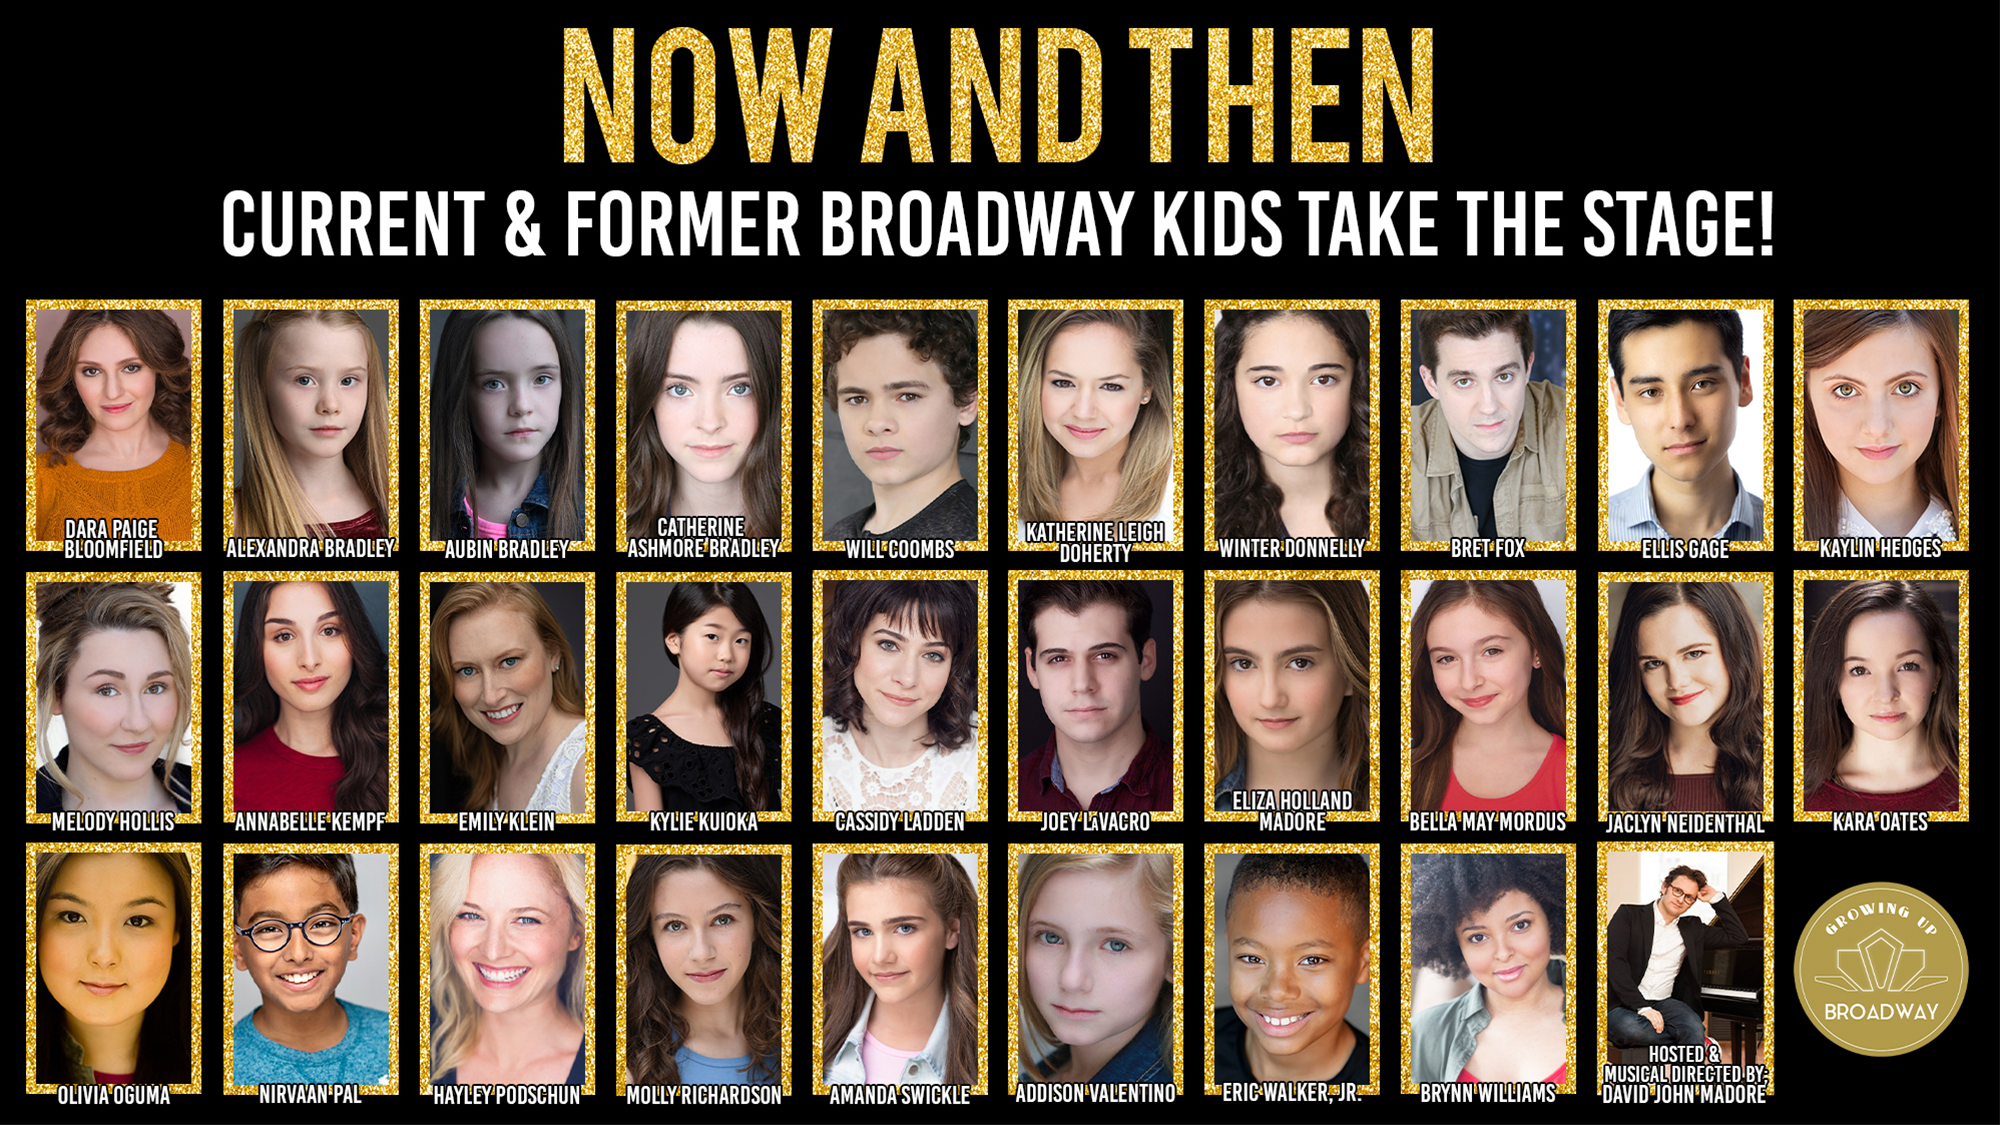 Now and Then: Current & Former Broadway Kids Take the Stage!